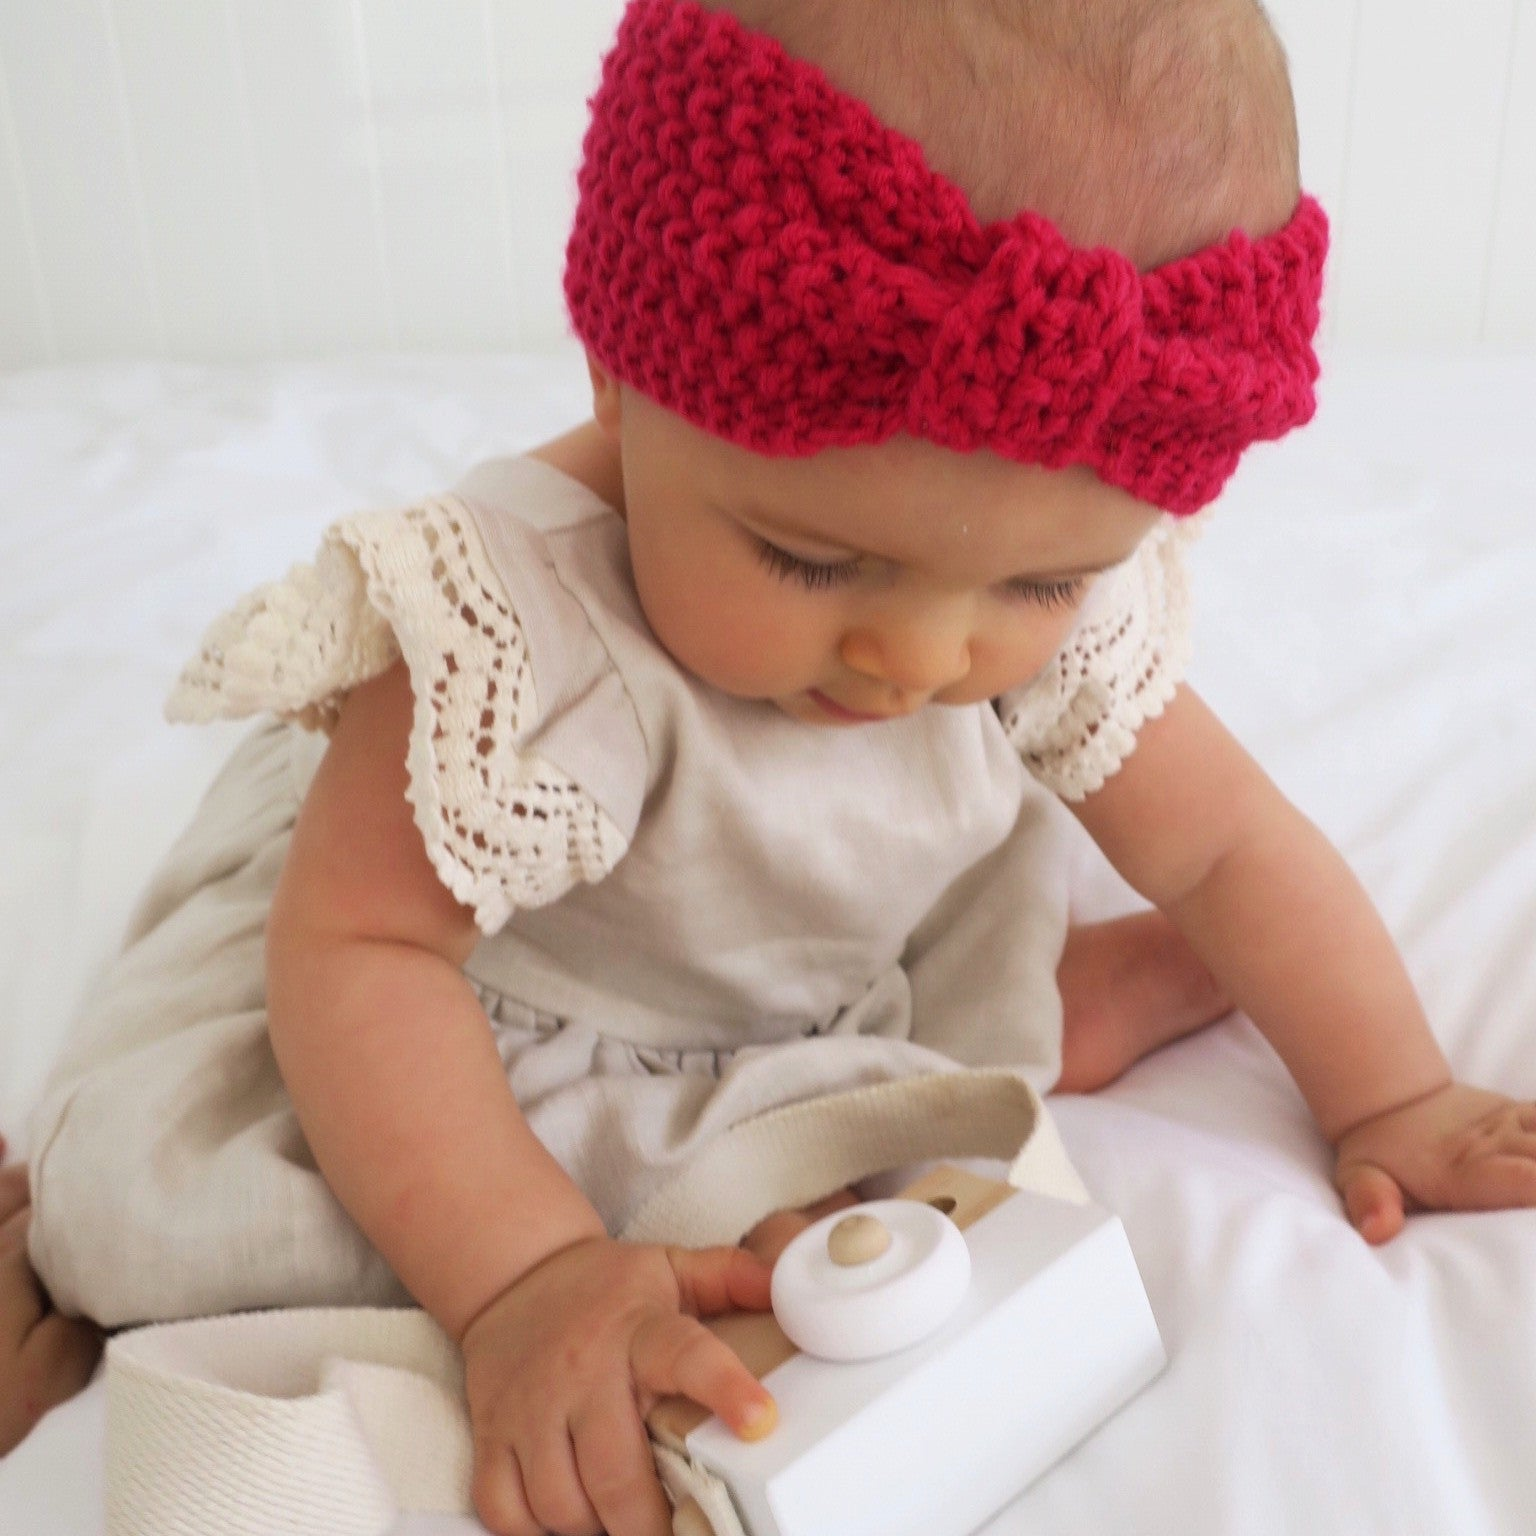 Knitted Top Knot - Beautiful in Berrylicious